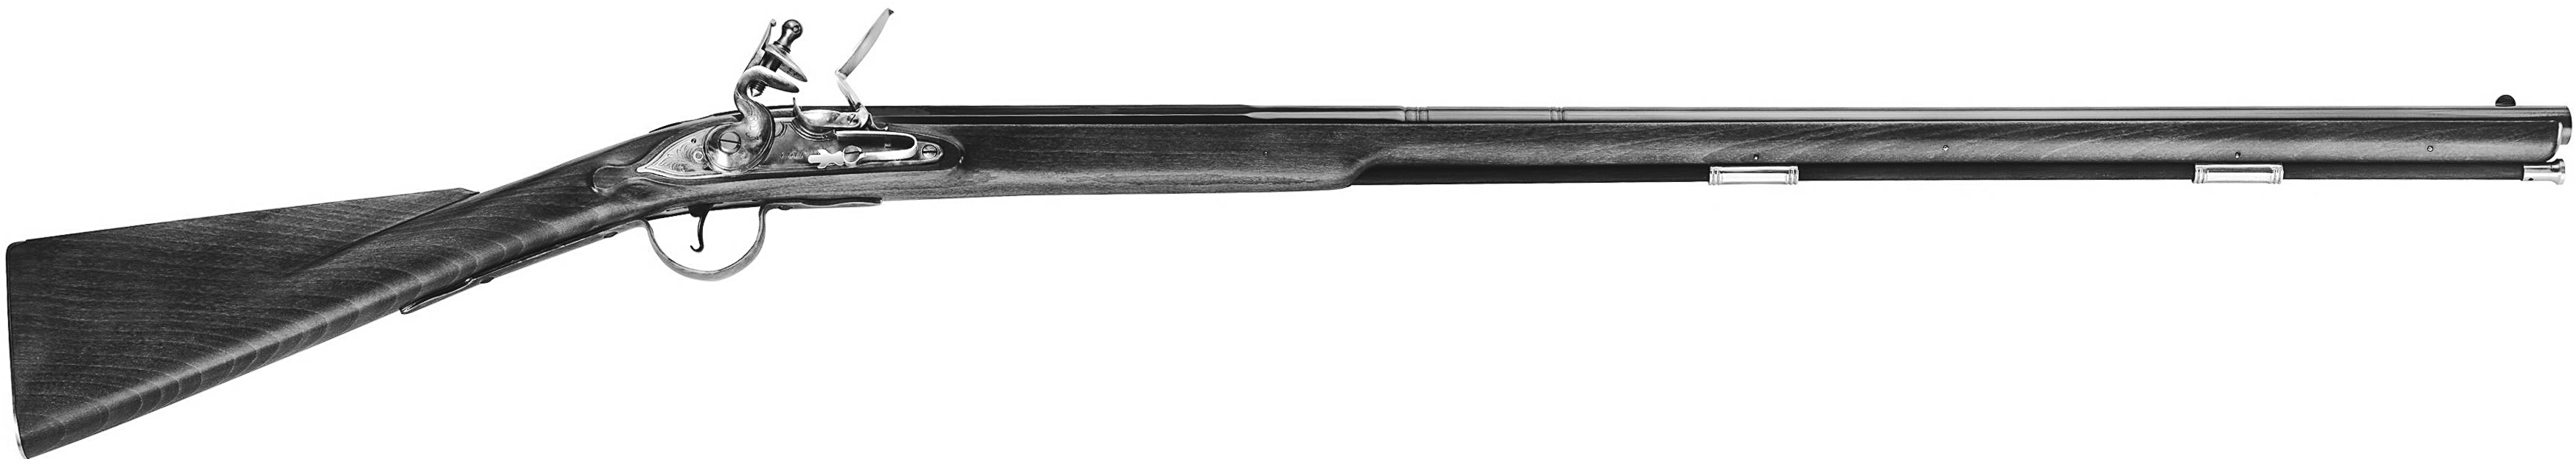 Indian Trade Musket